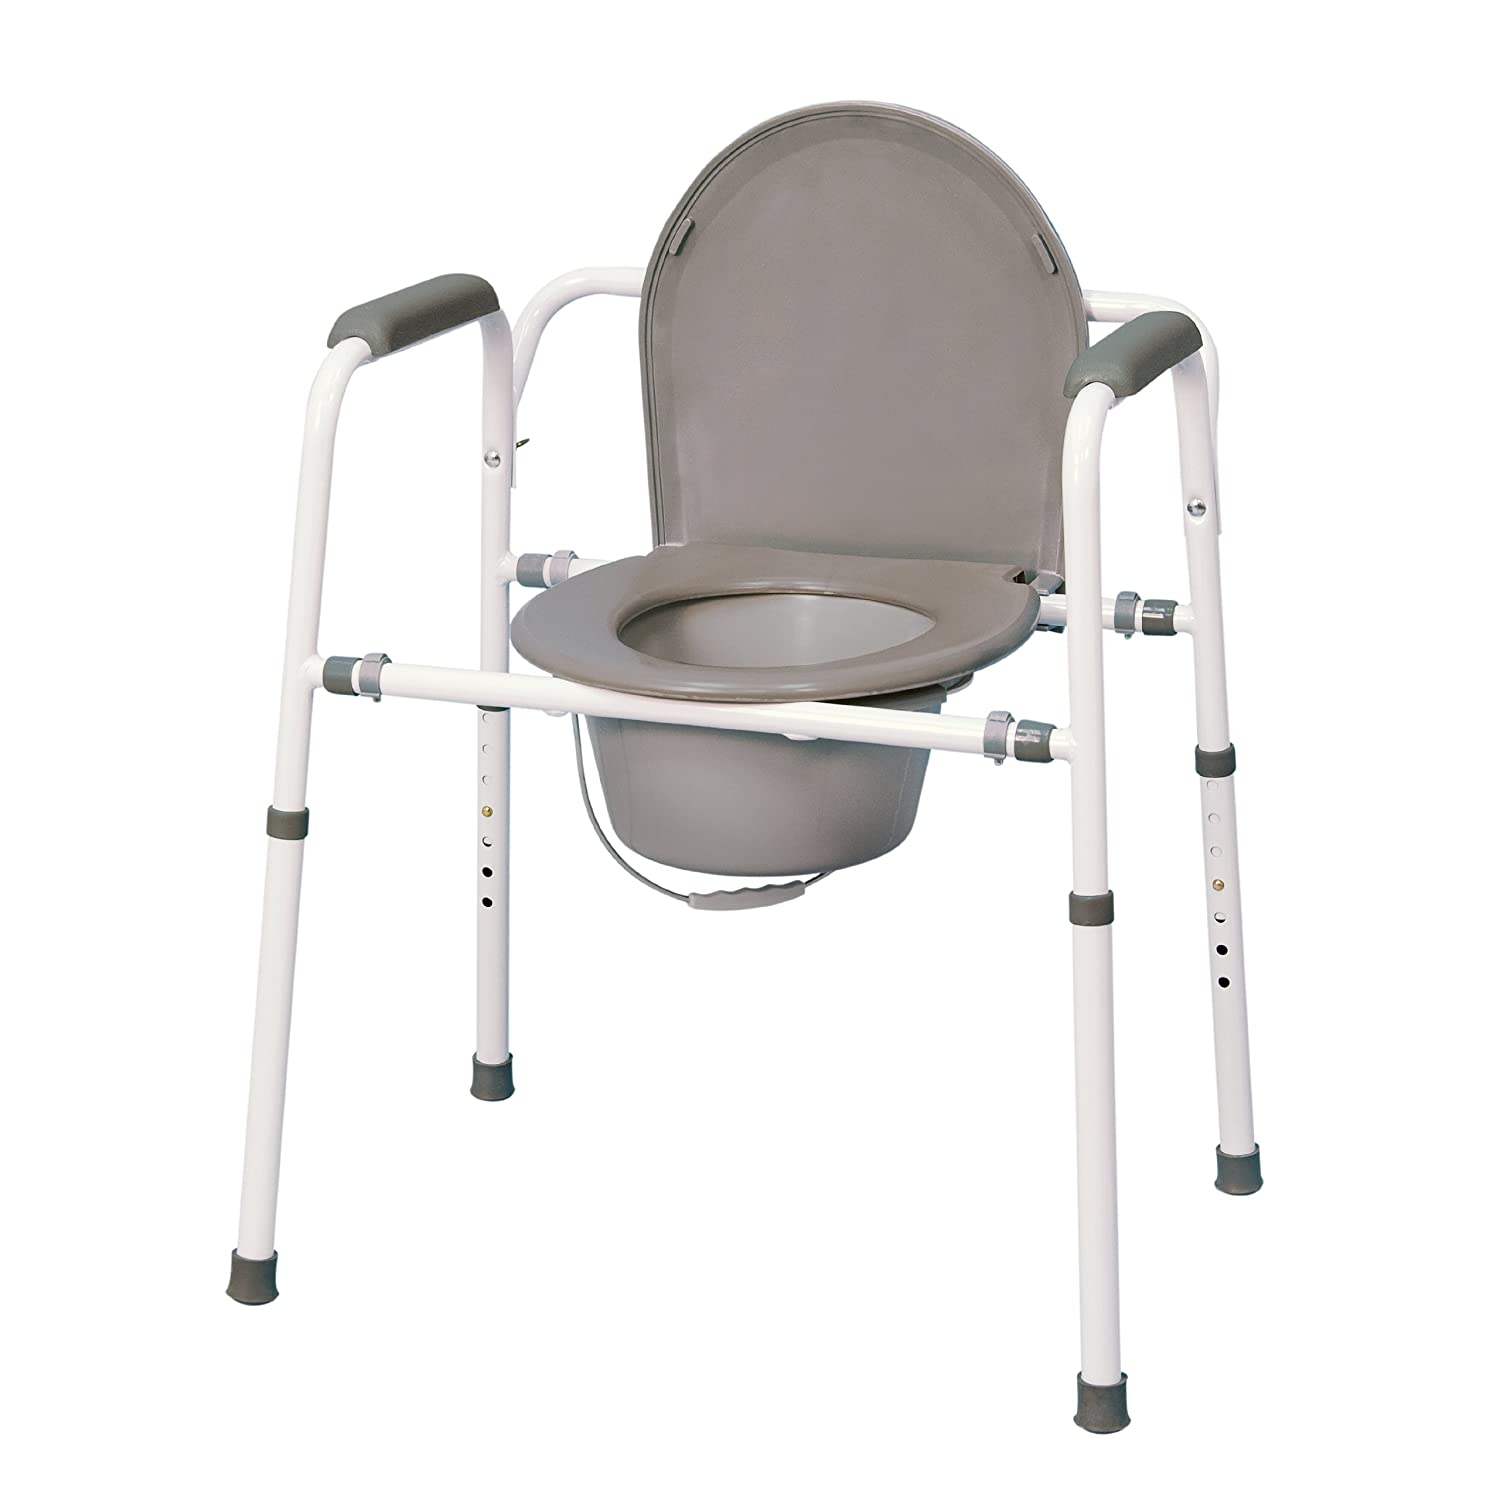 Amazon MedPro Homecare mode Chair with Adjustable Height